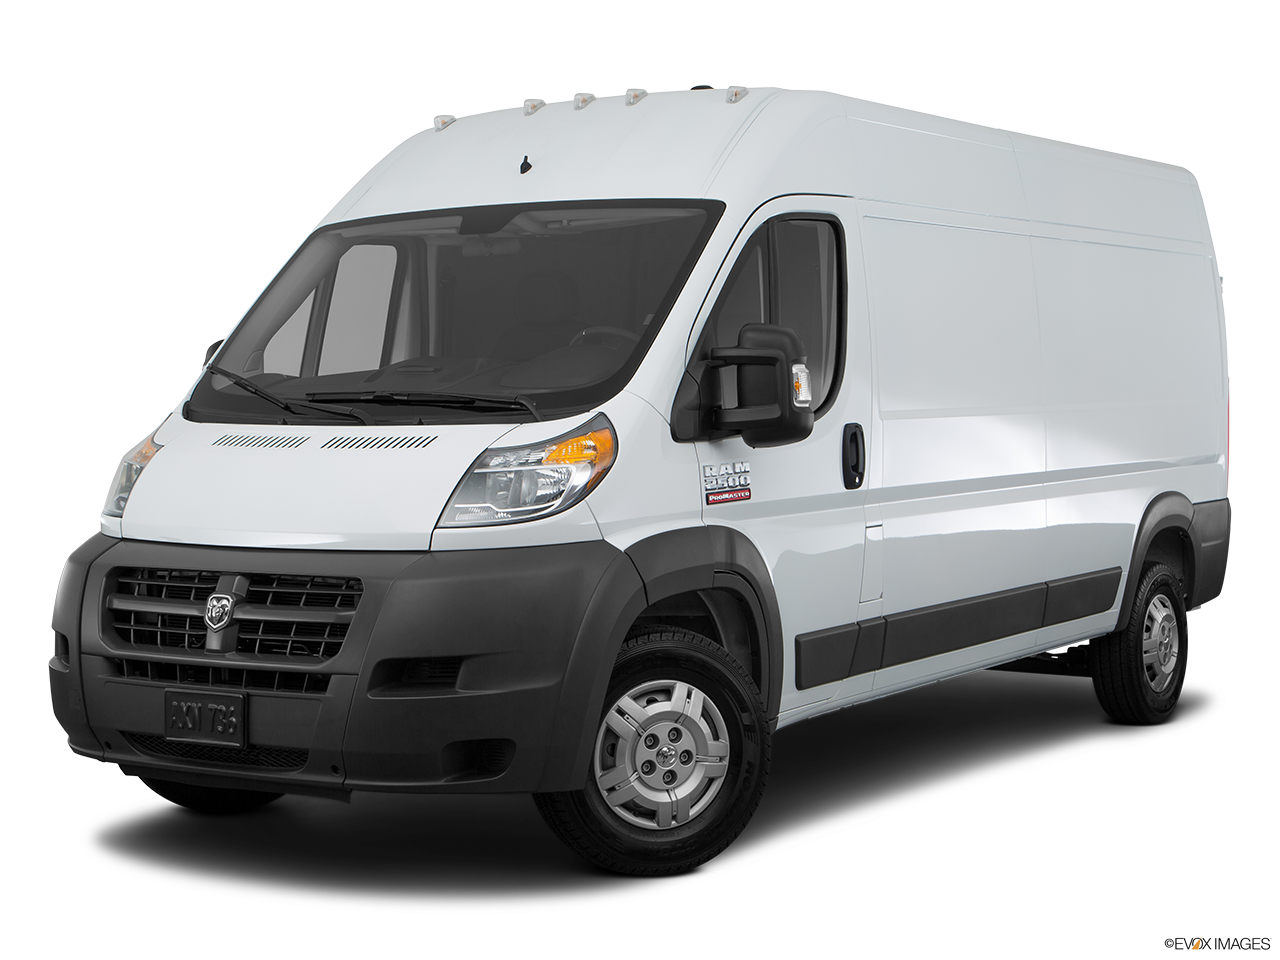 Test Drive A 2016 RAM ProMaster at Arrigo CDJR West Palm Beach in West Palm Beach